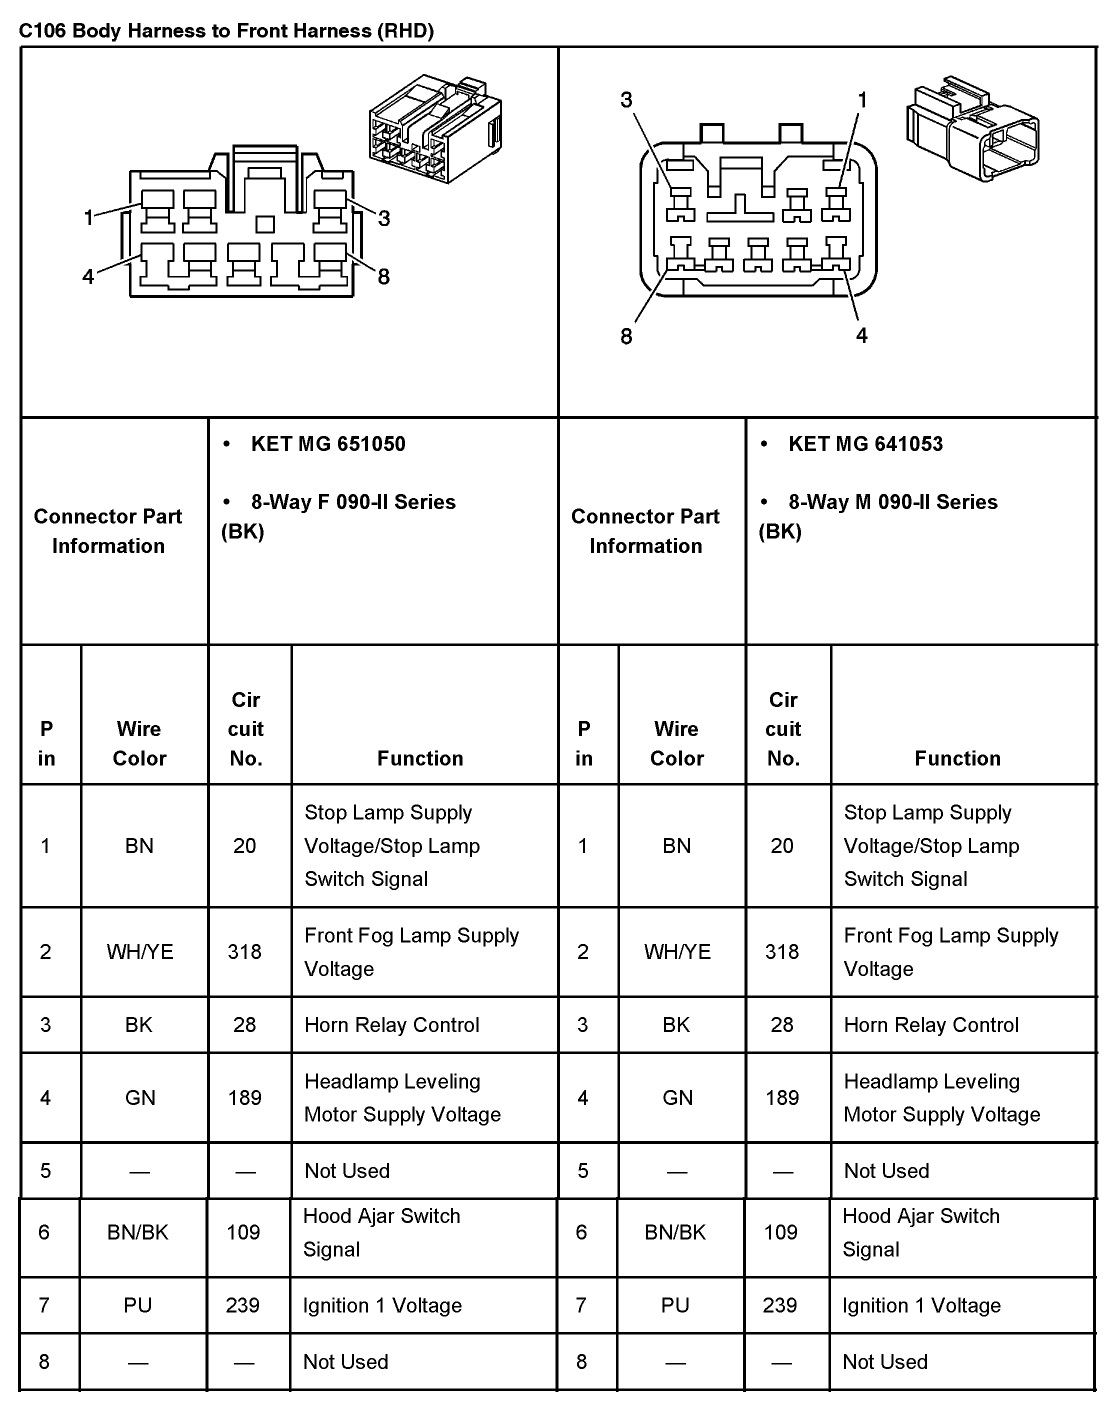 7331d1383704576 2005 aveo master connector list diagrams conn3 jpg 2008 chevy aveo fuse box diagram chevy aveo door lock diagram 2013 chevy cruze fuse box diagram at fashall.co